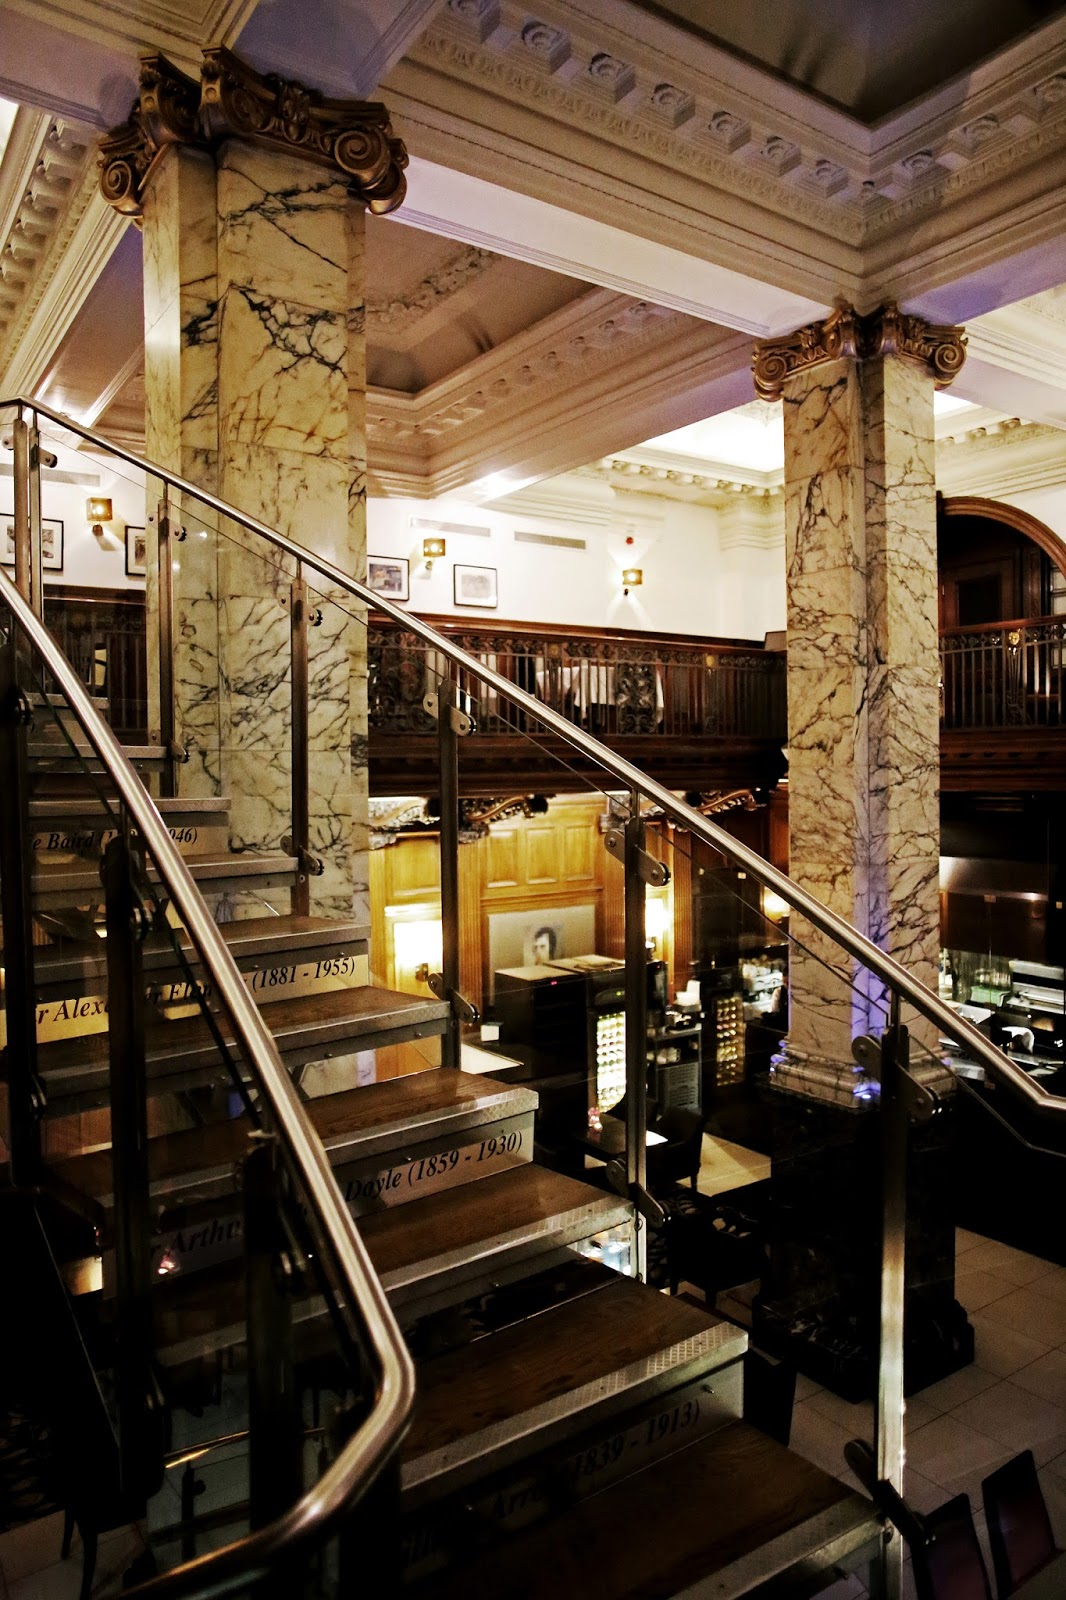 North Bridge Brasserie at The Scotsman Hotel, Edinburgh